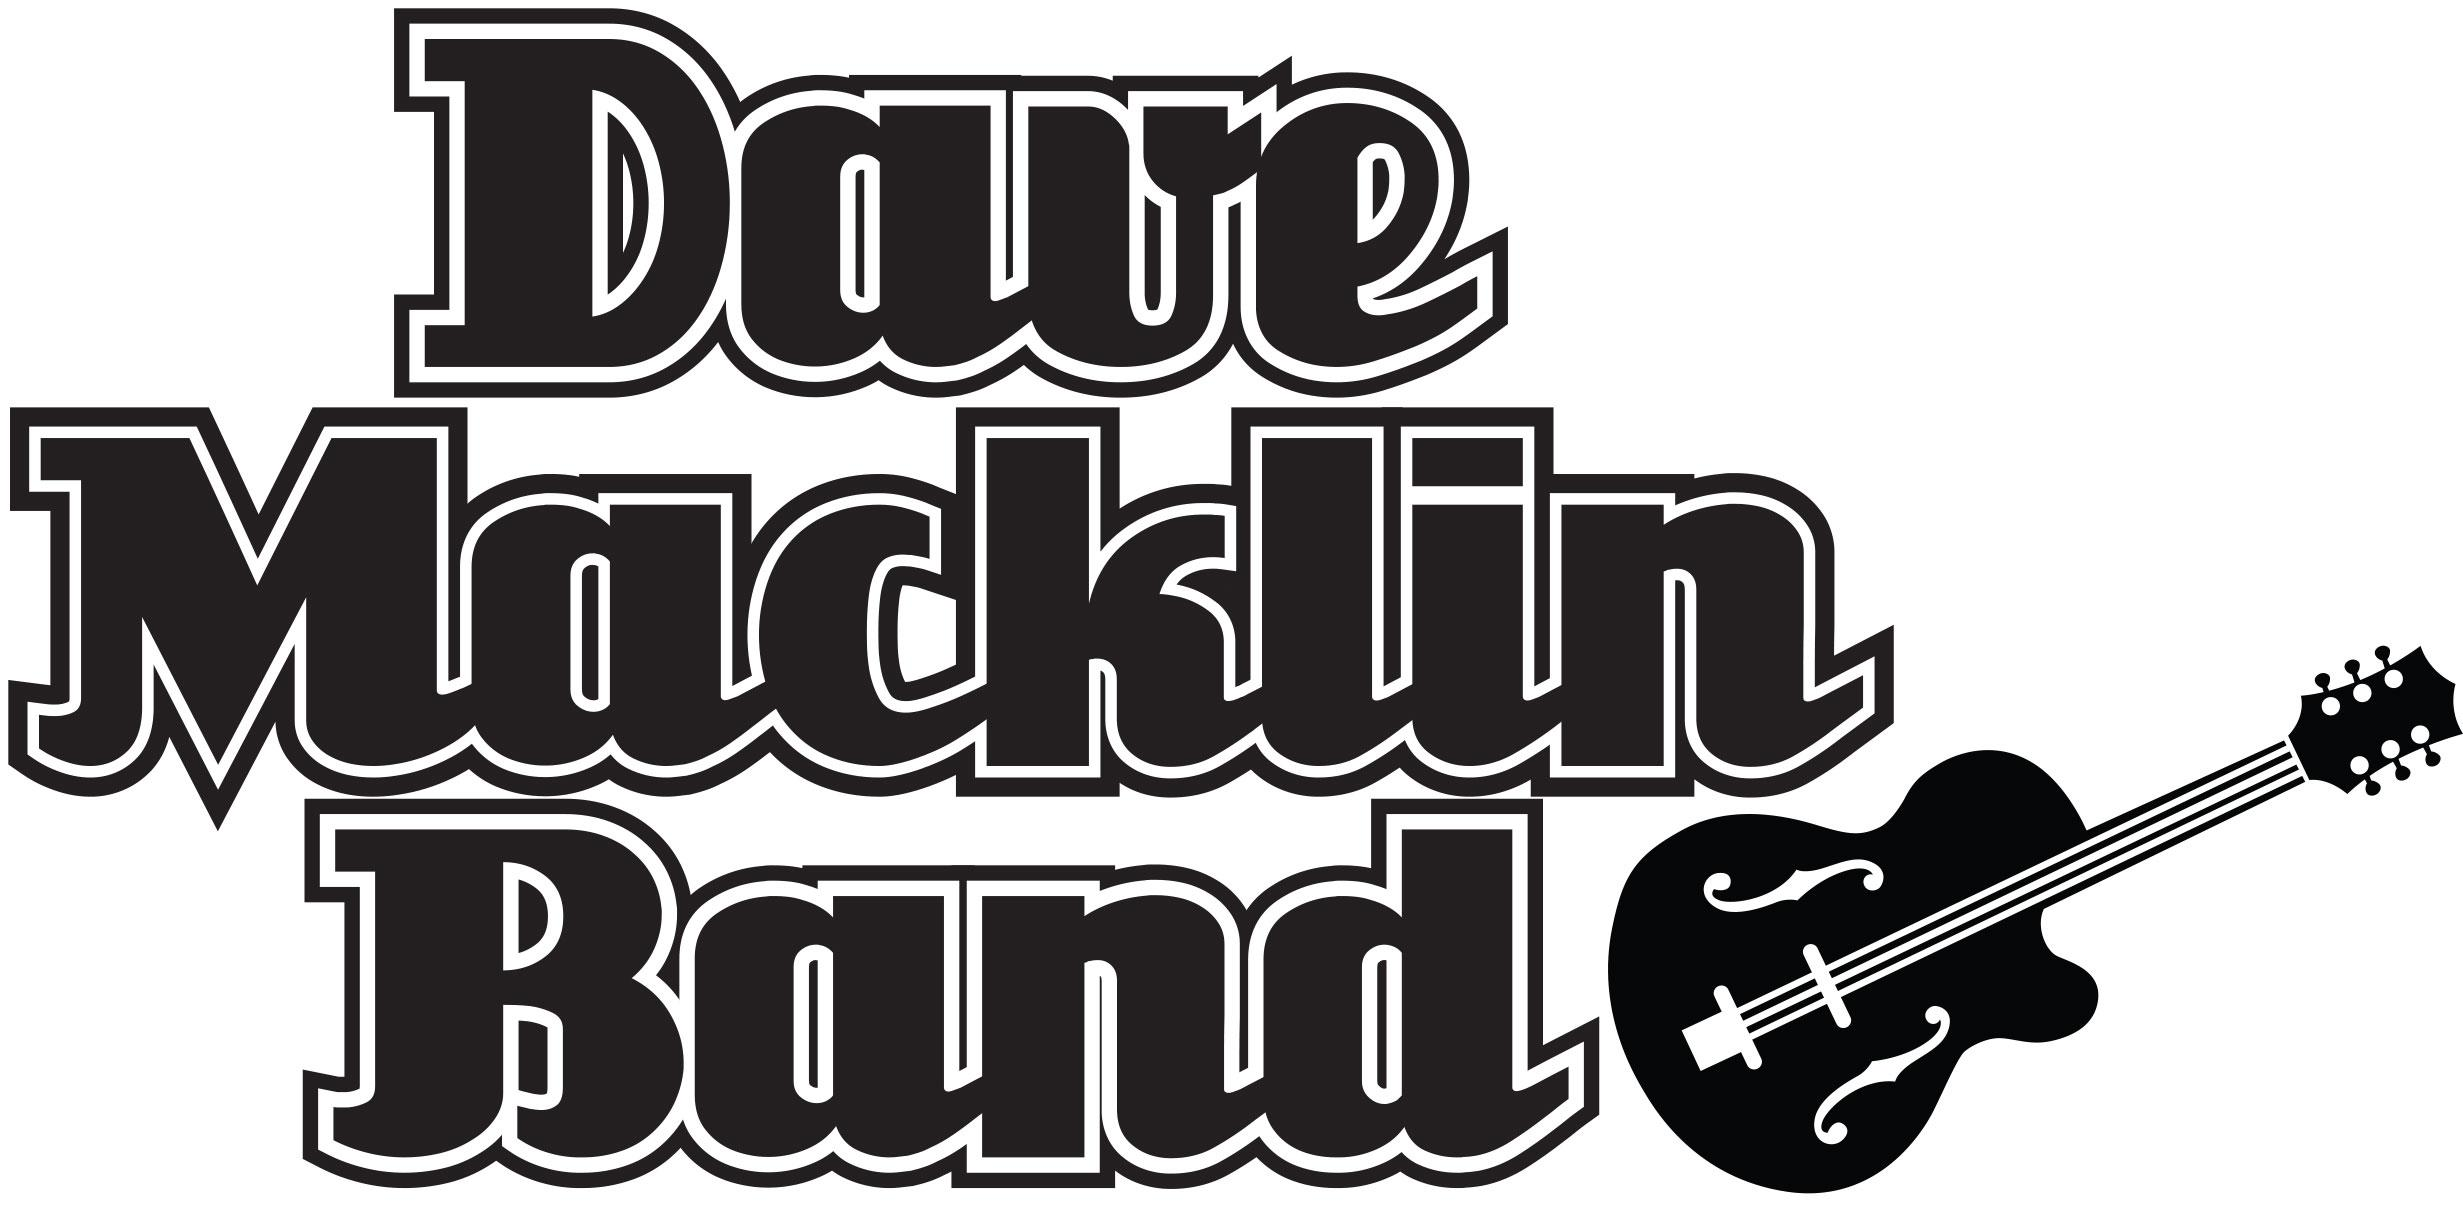 The Dave Macklin Band